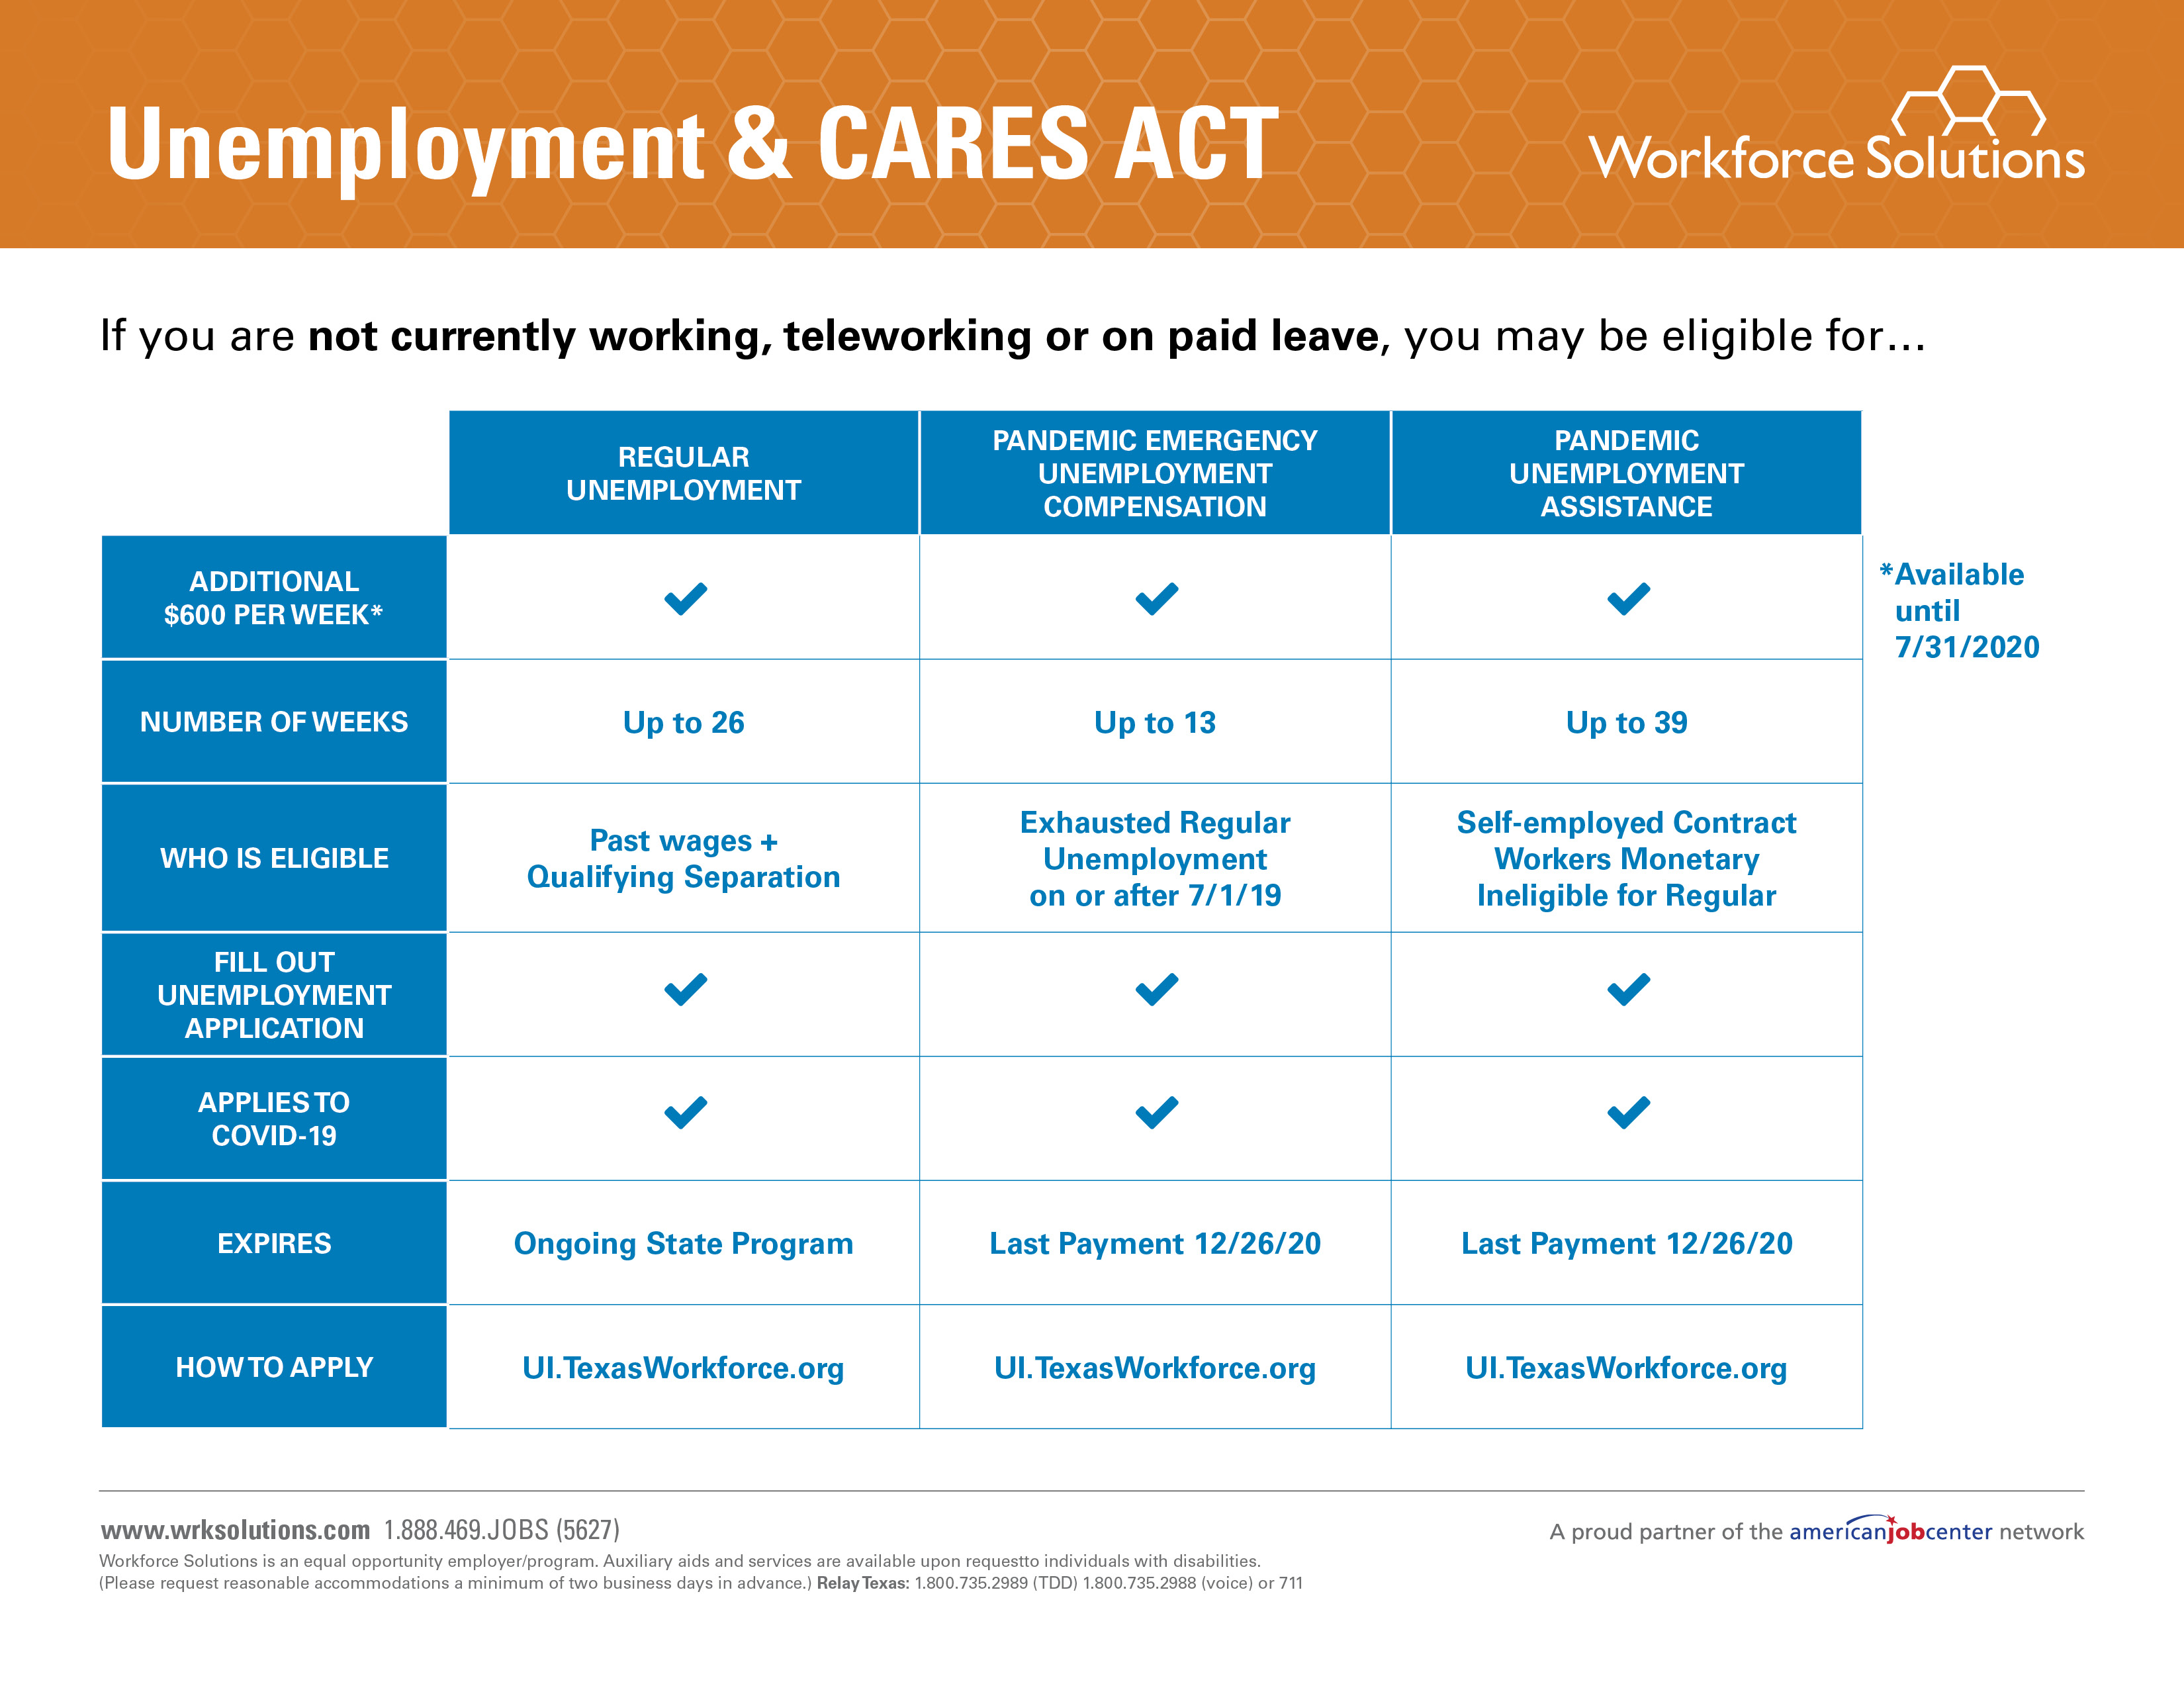 Unemployment & Cares Act